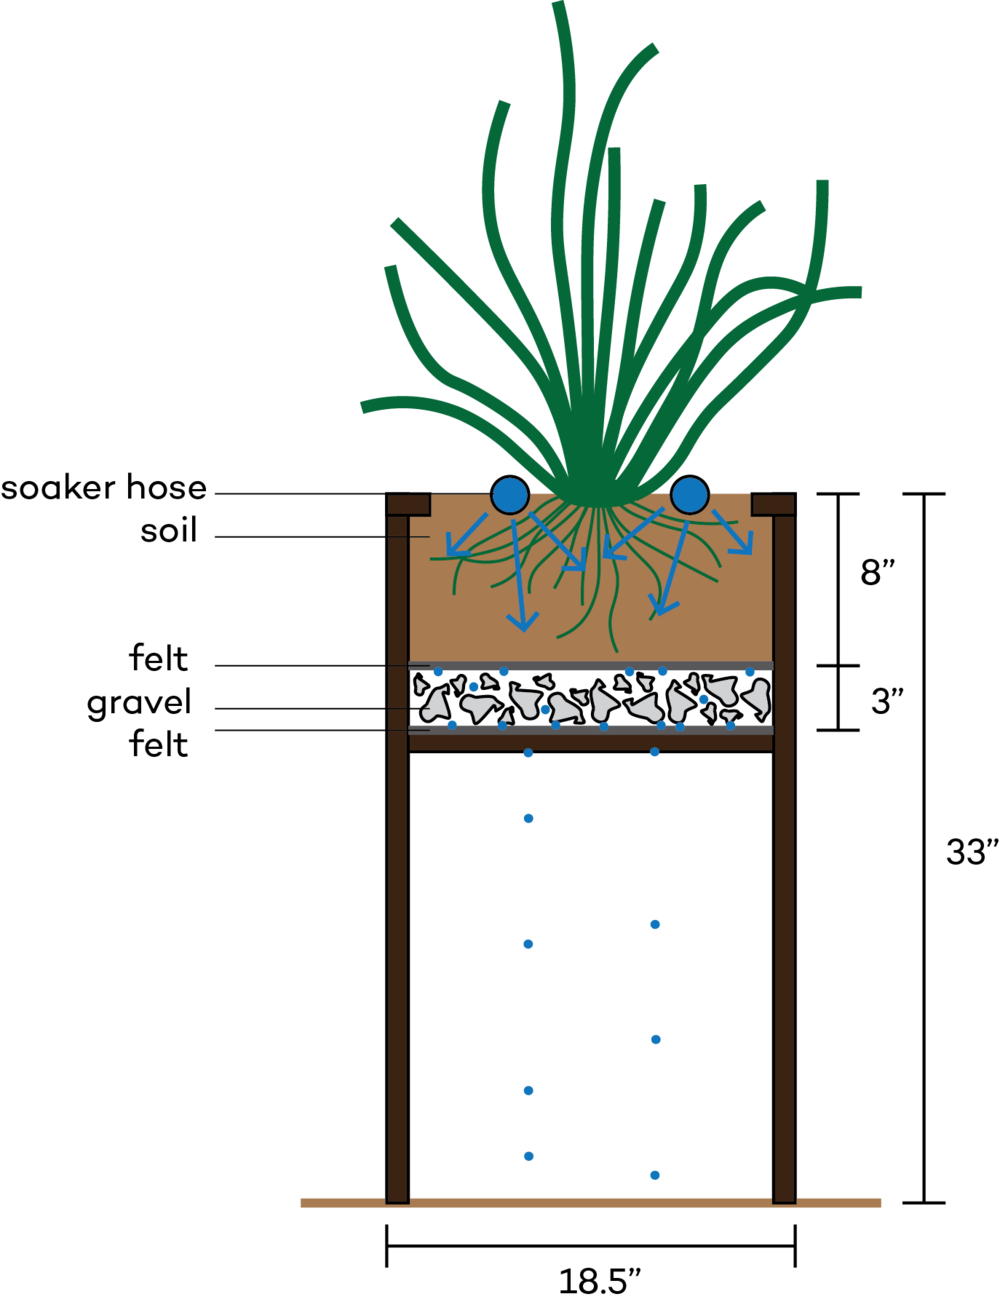 Diagram of Enable's self-watering planters.